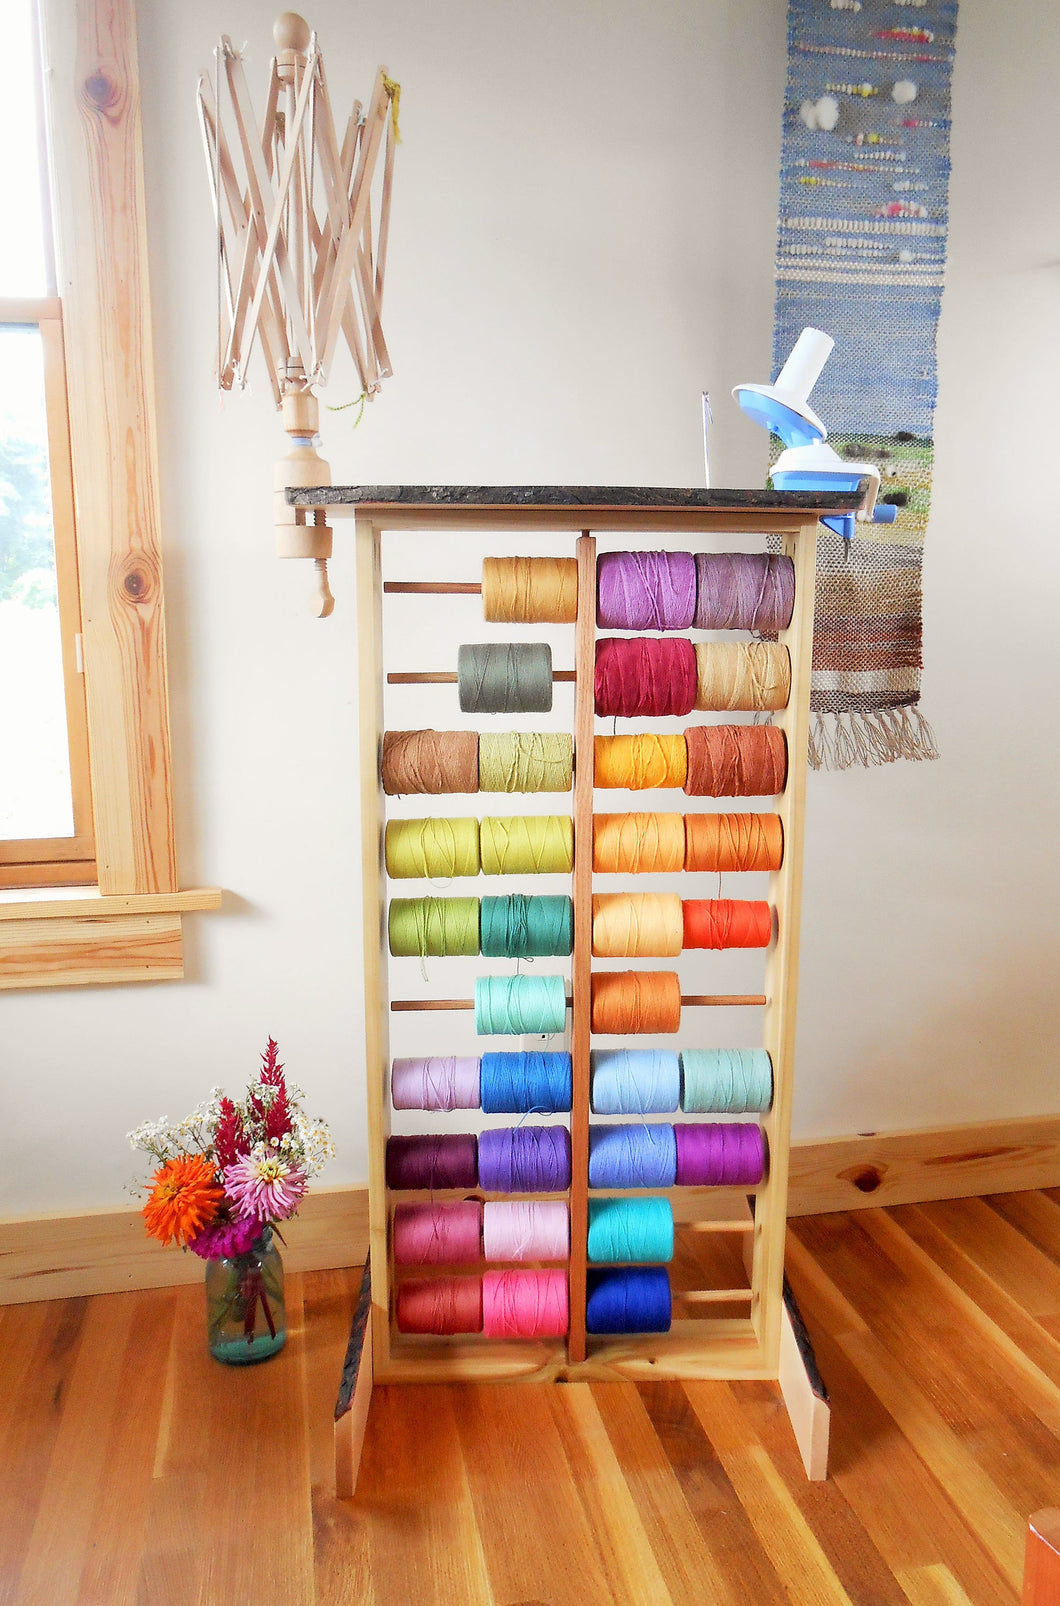 Weaving Winding Station & Spool Rack - Custom Made From Appalachian Hardwoods